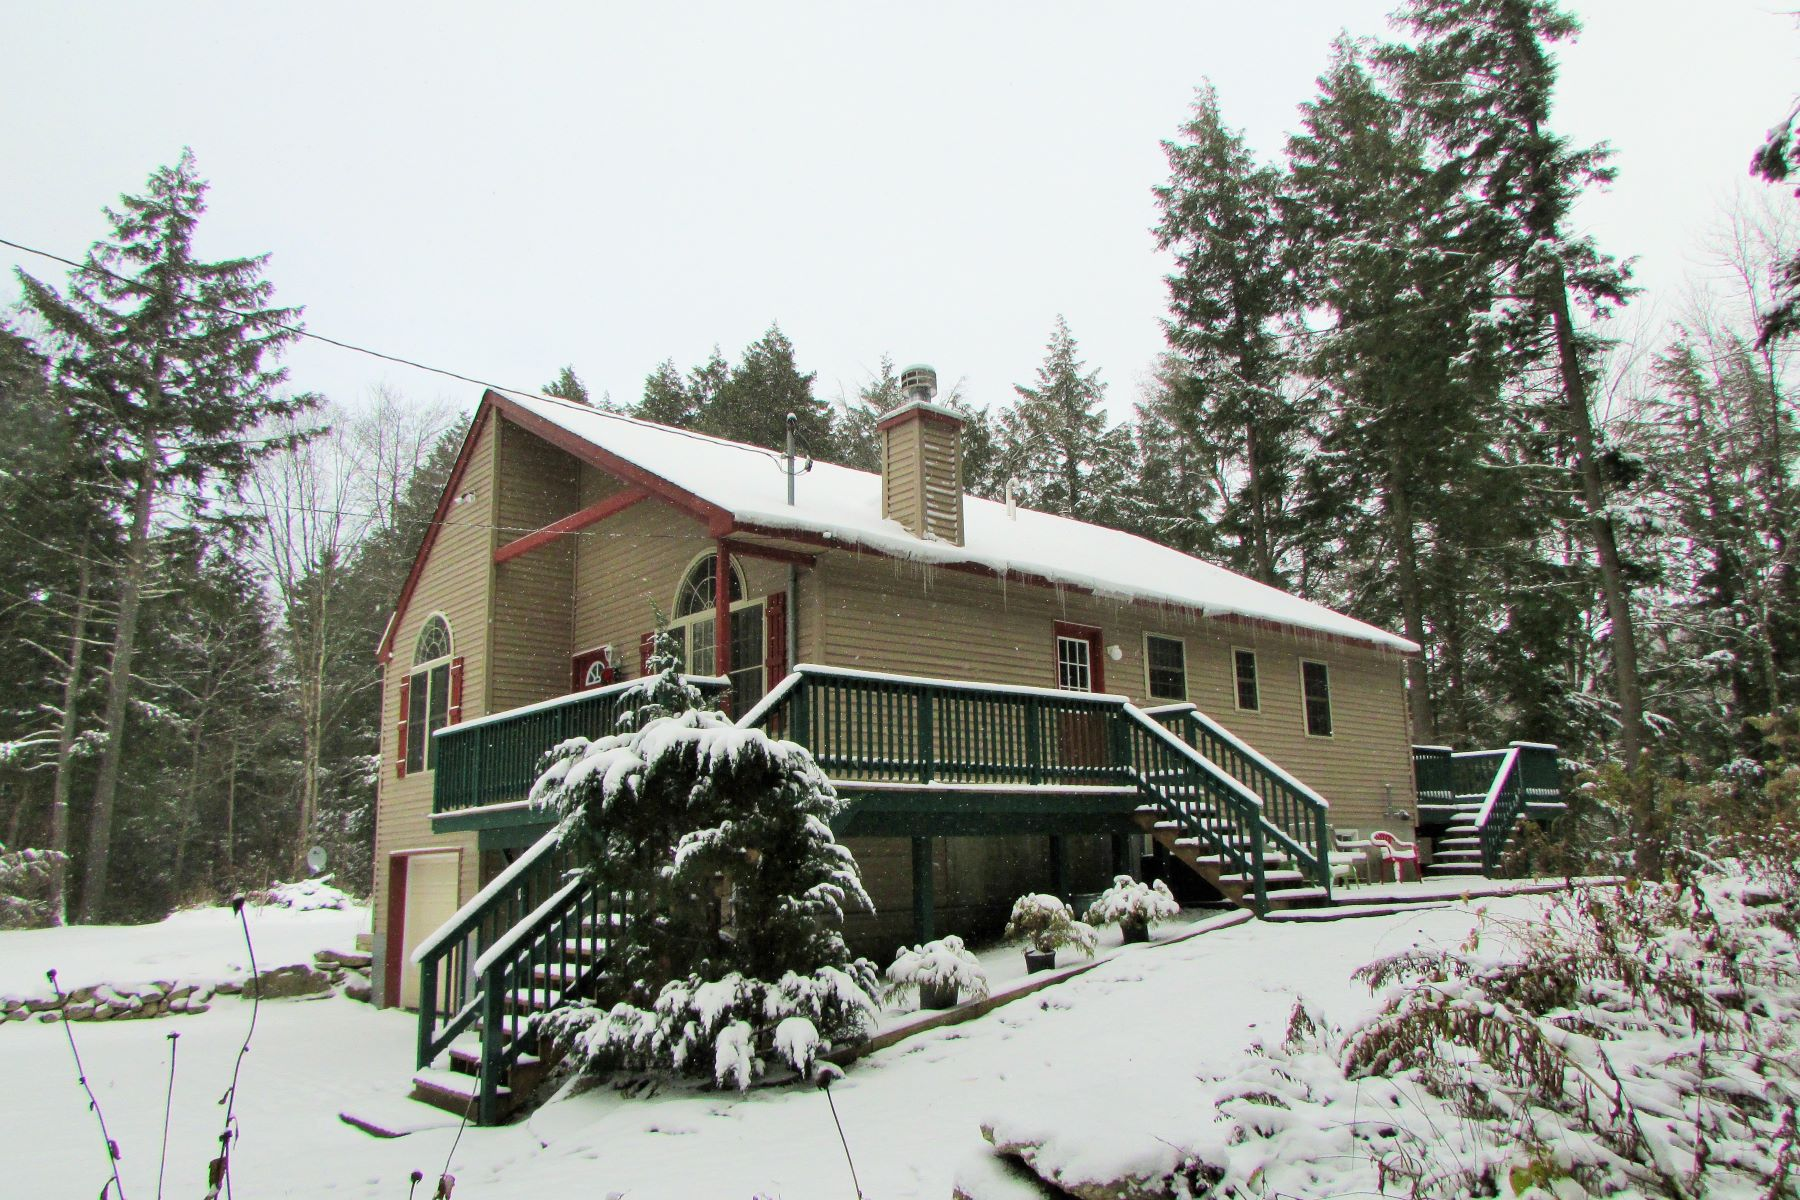 Single Family Home for Sale at Close to Ski Resorts 180 Boardman Loop Wardsboro, Vermont, 05355 United States